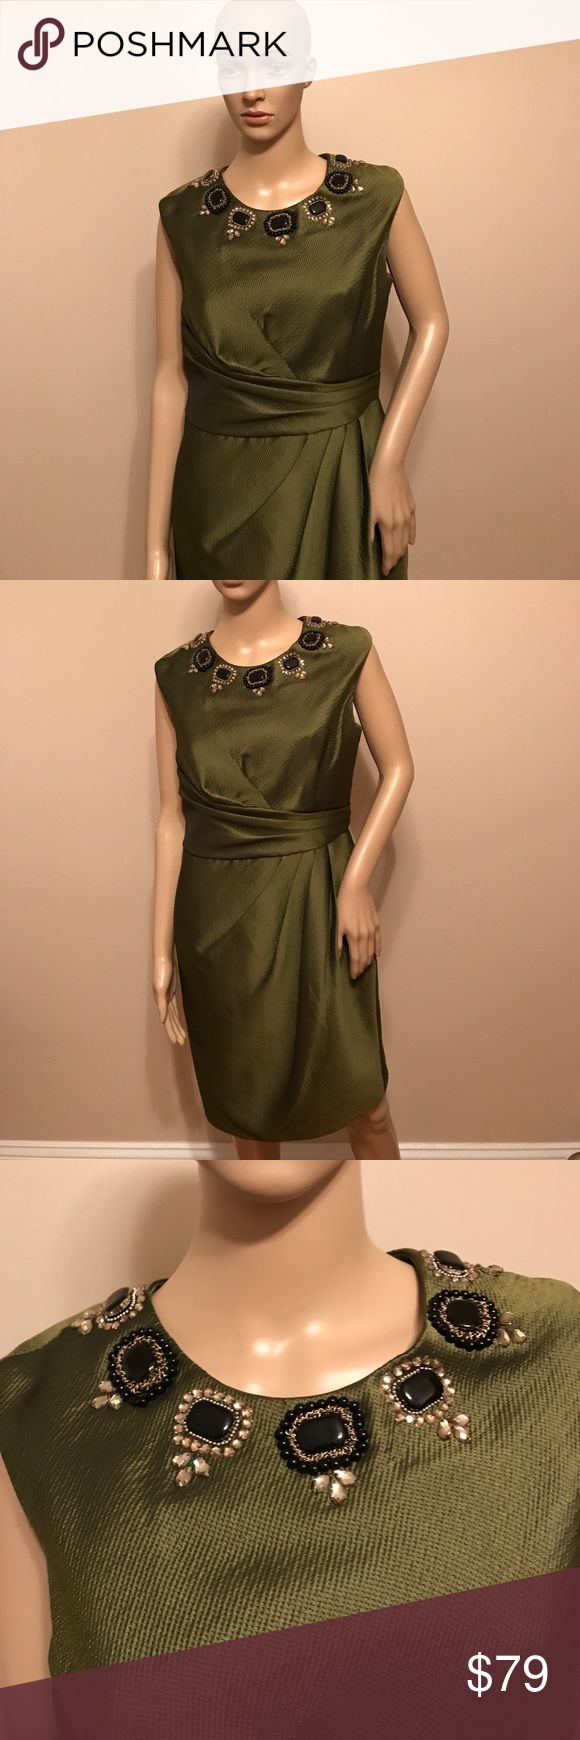 Carmen marc valvo dress Carmen marc valvo dress with a beautiful jeweled neckline. The dress has a back zipper. It is in excellent condition. The color is exquisite, suz-02 Carmen Marc Valvo Dresses Midi